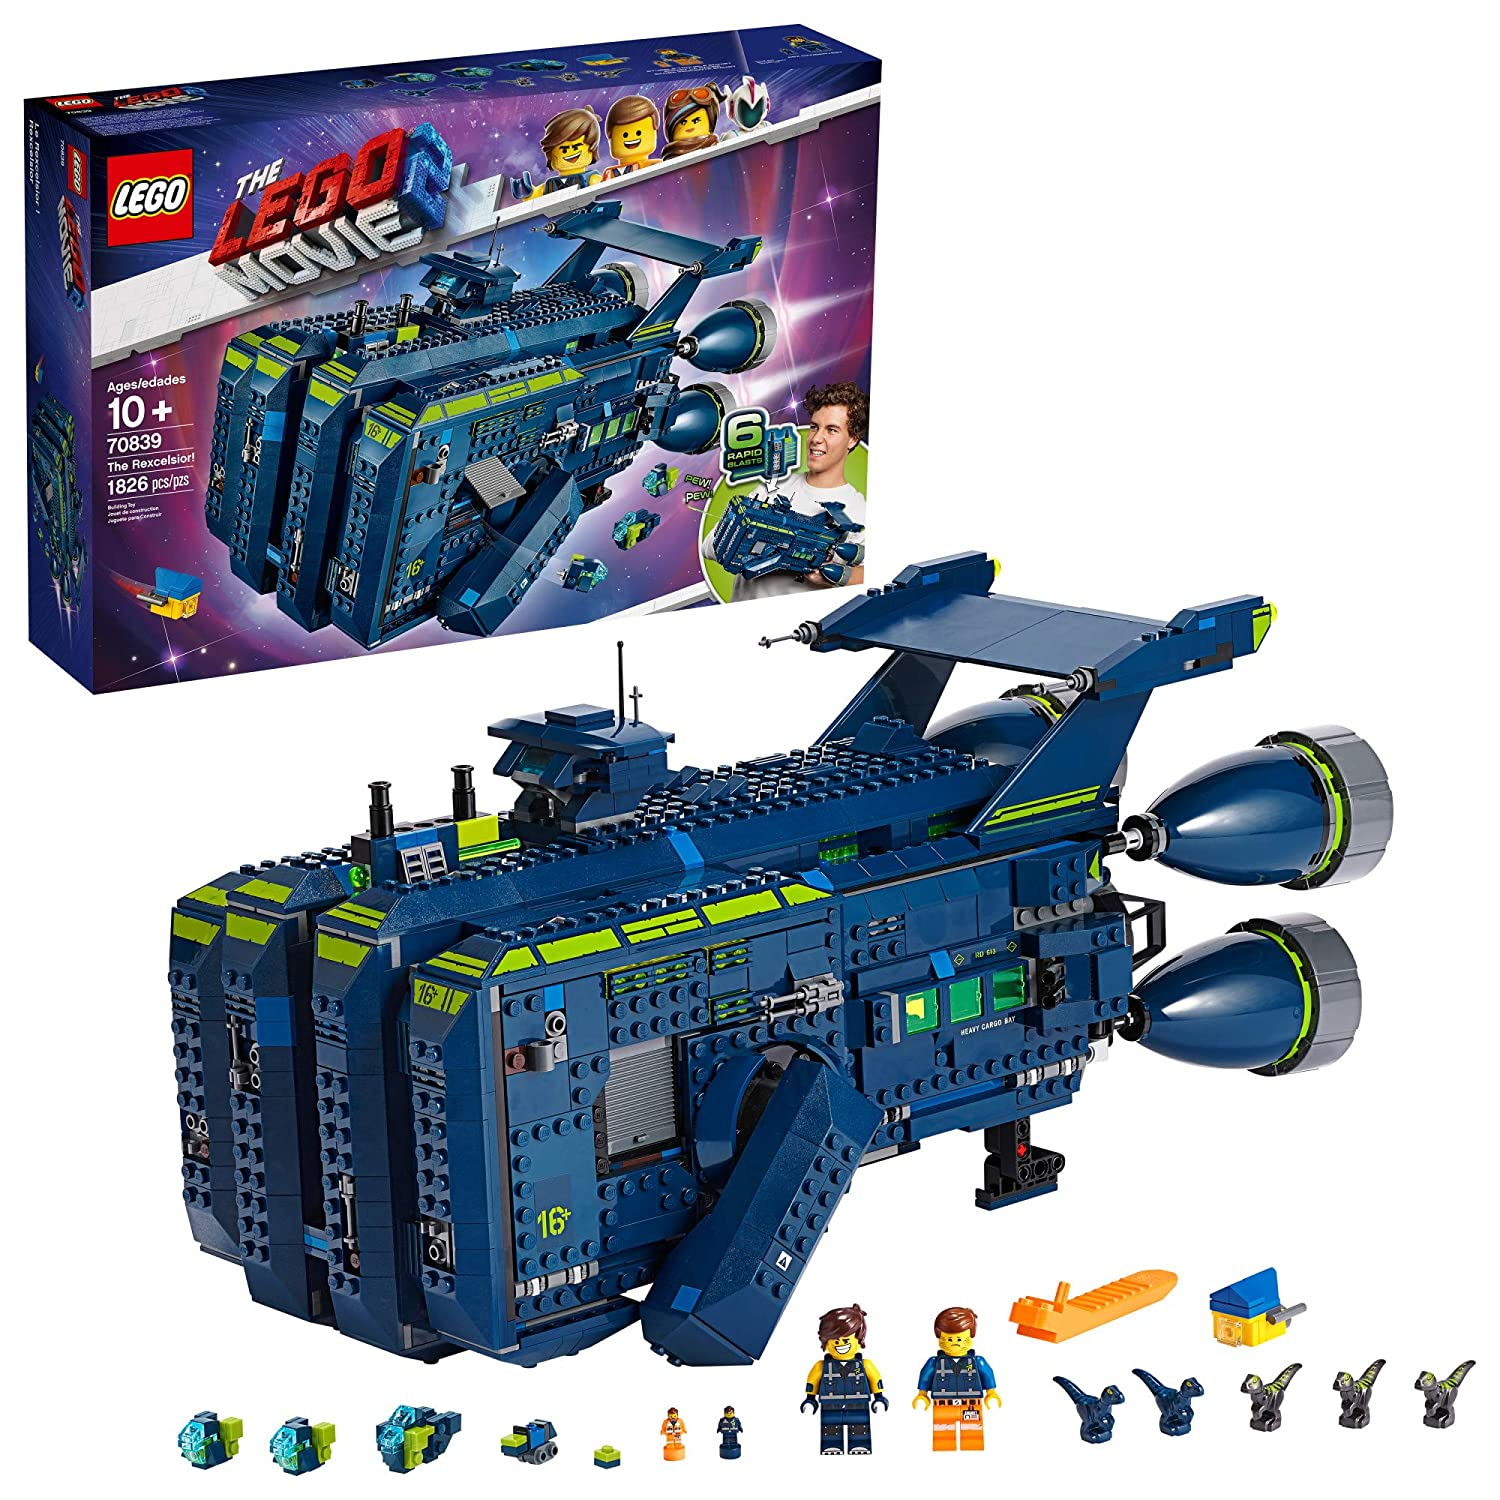 THE LEGO MOVIE 2 The Rexcelsior! 70839 Building Kit, New 2019 (1820 Pieces)